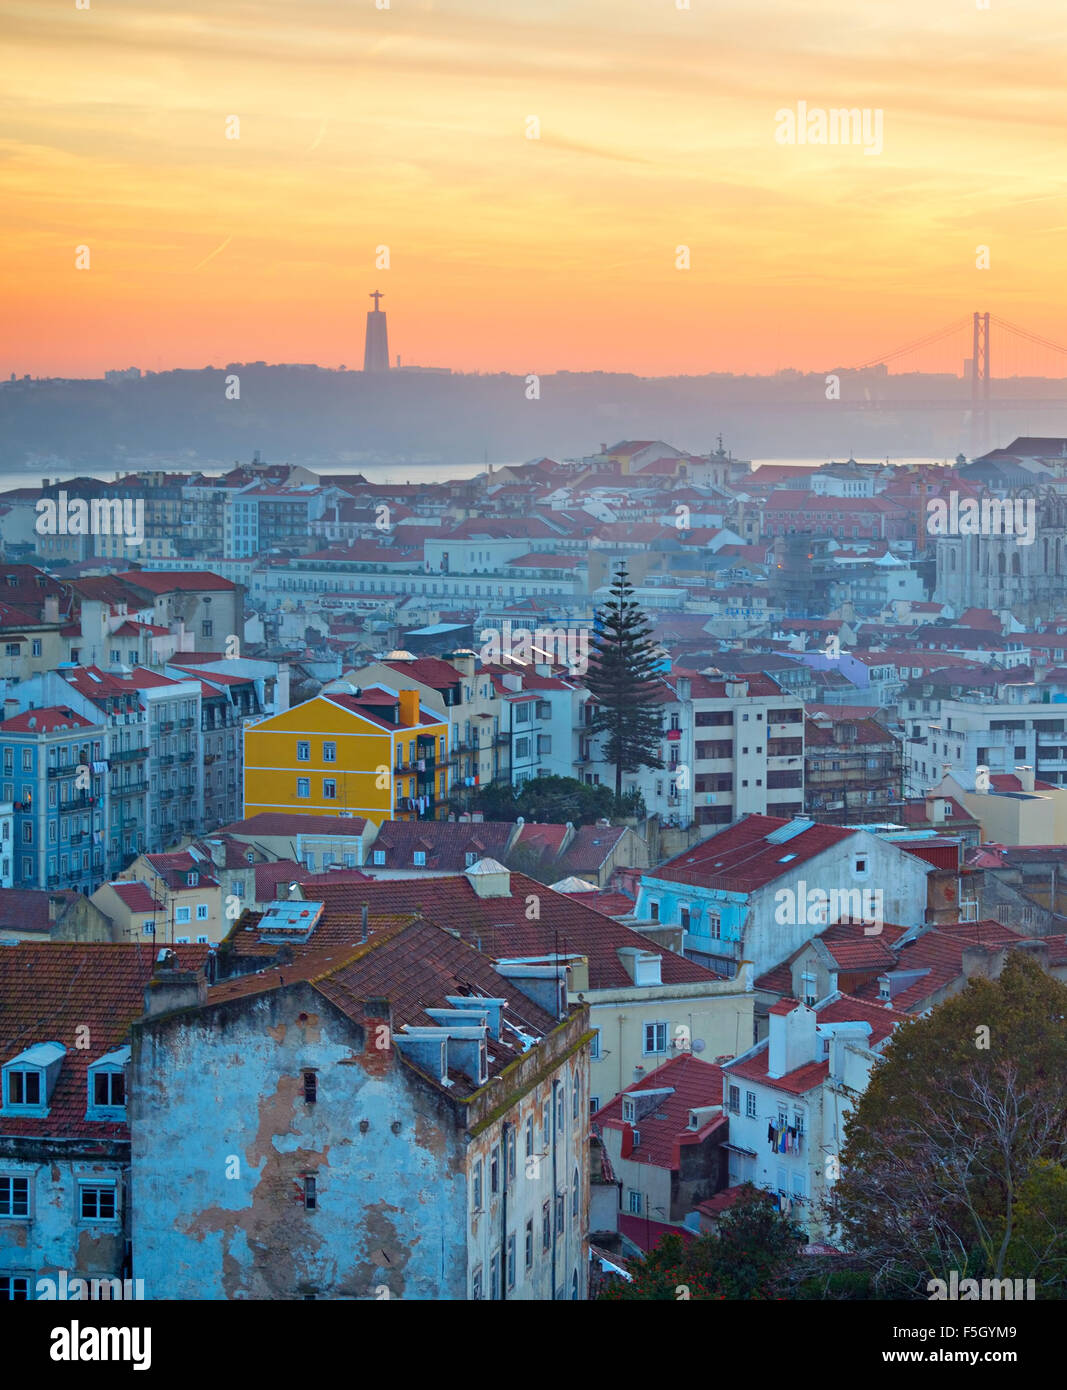 Lisbon Old Town at colorful sunset. Top view. Portugal - Stock Image